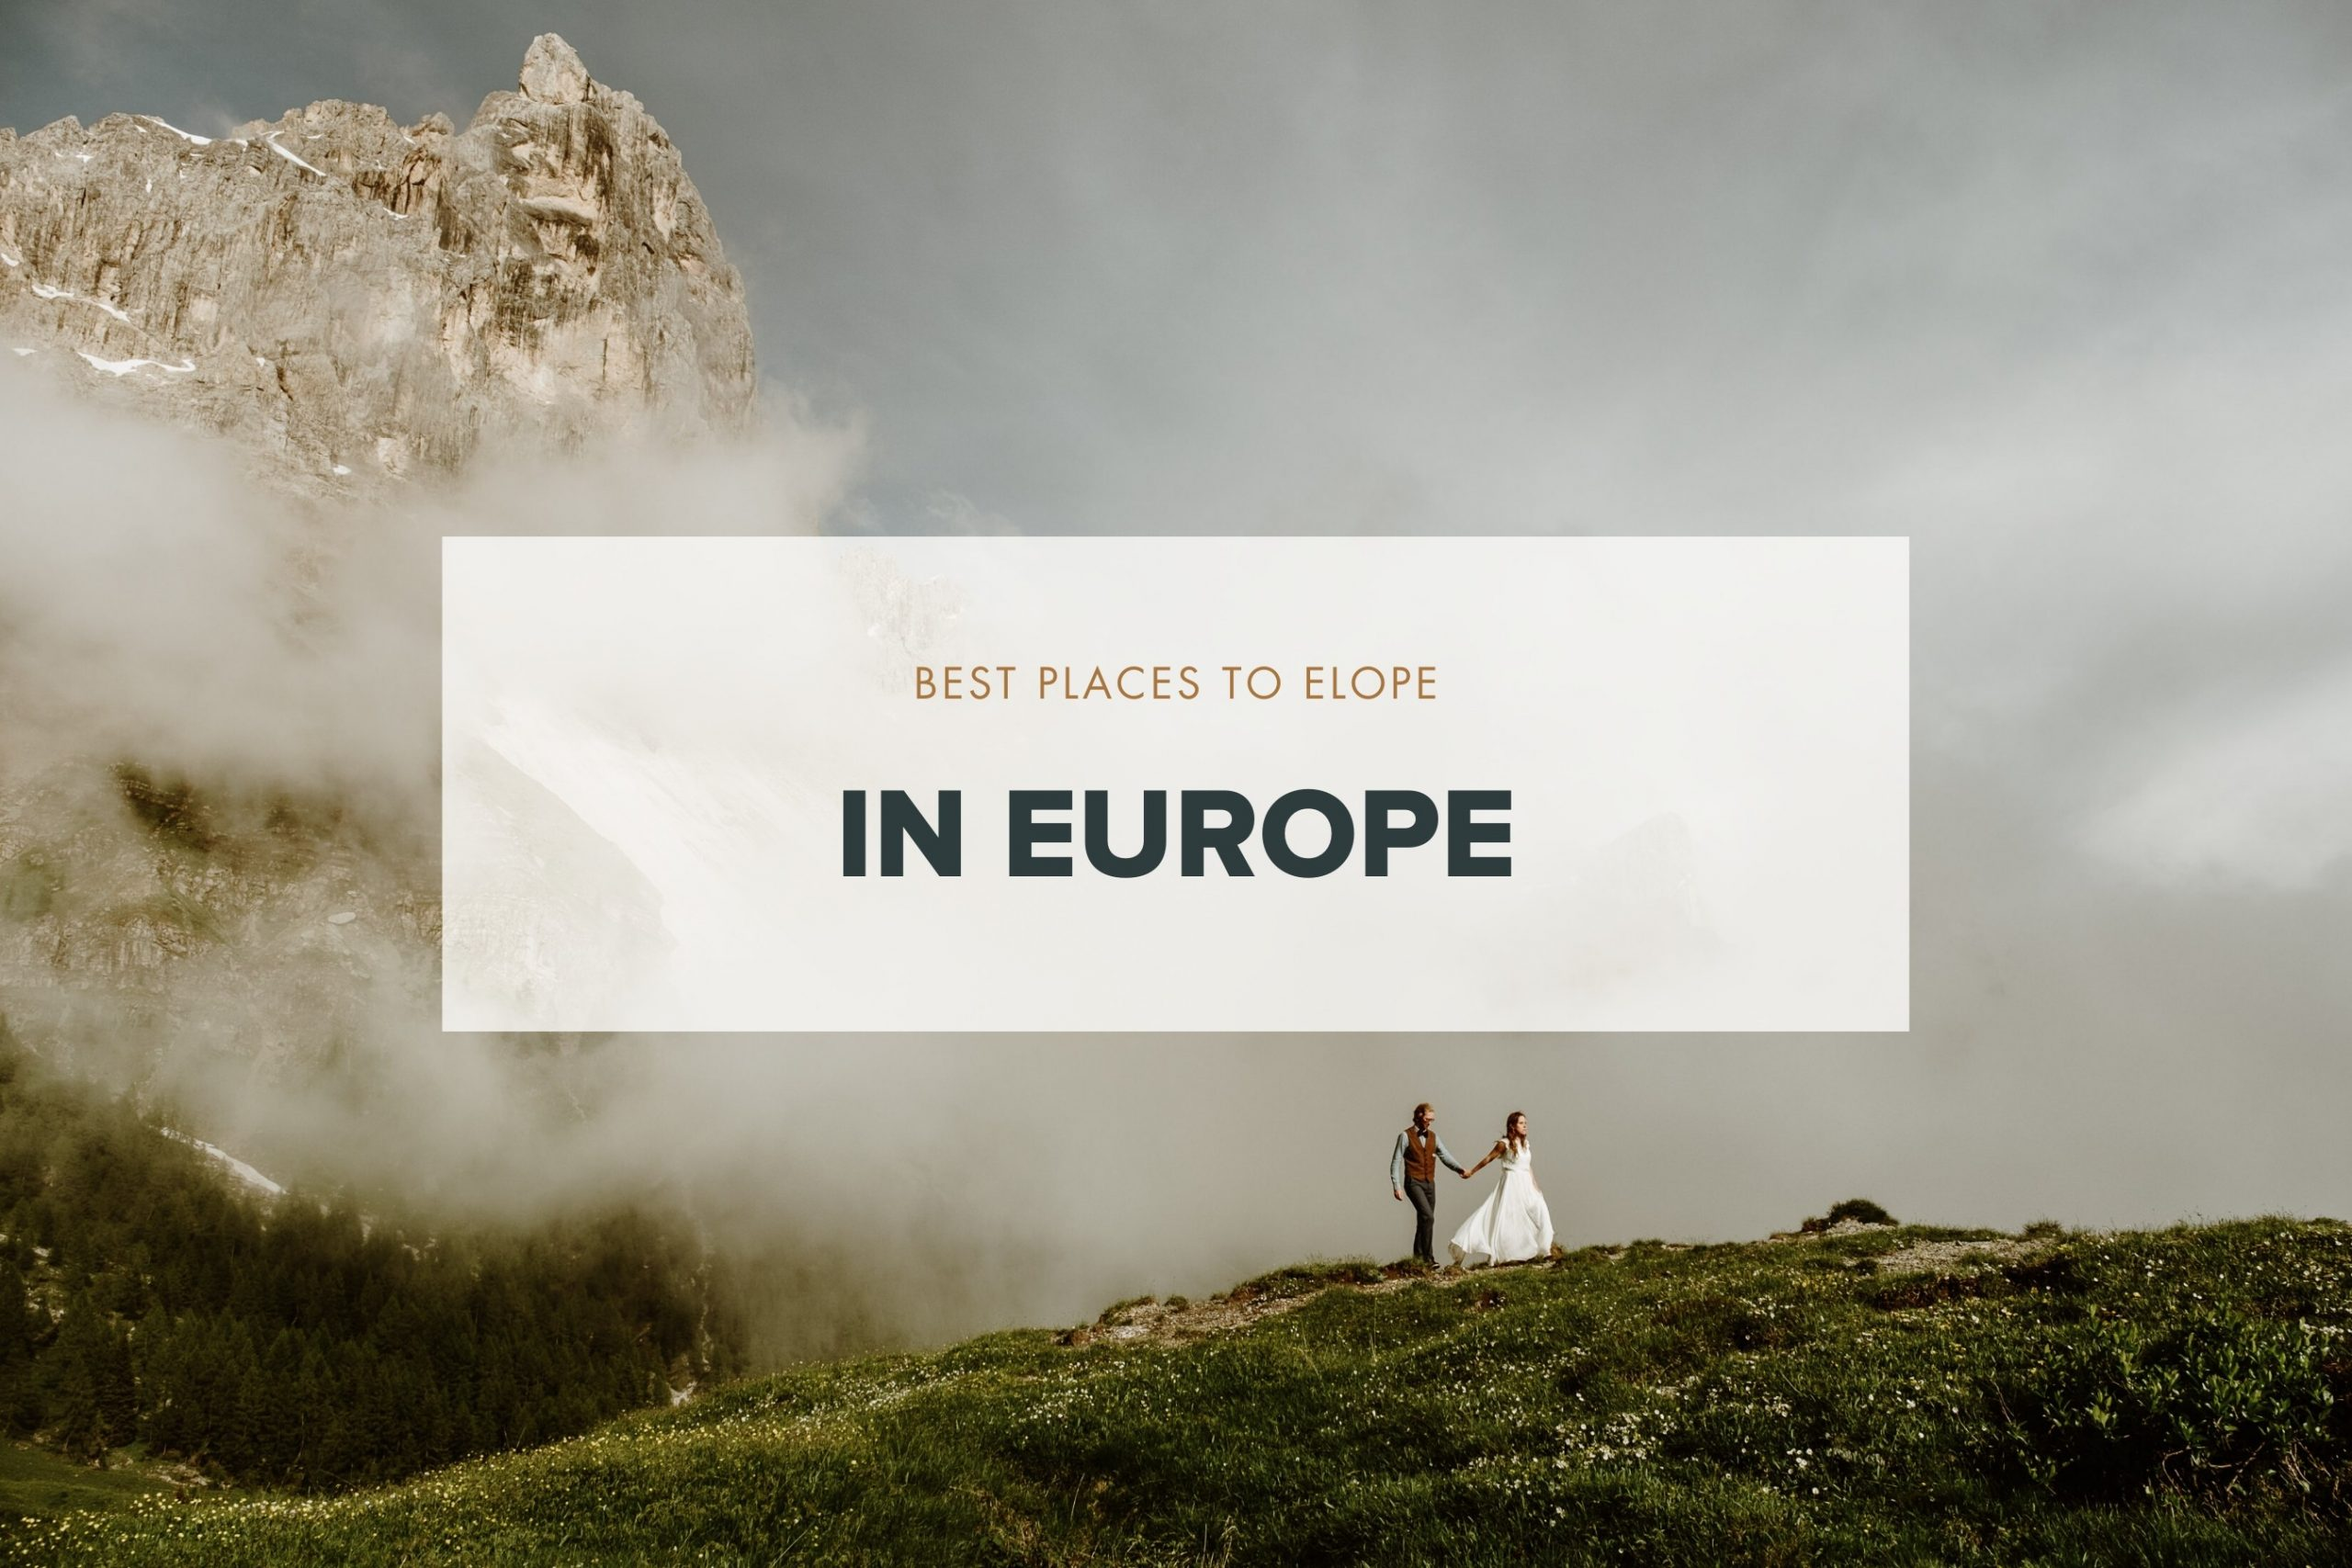 Best places to elope in Europe